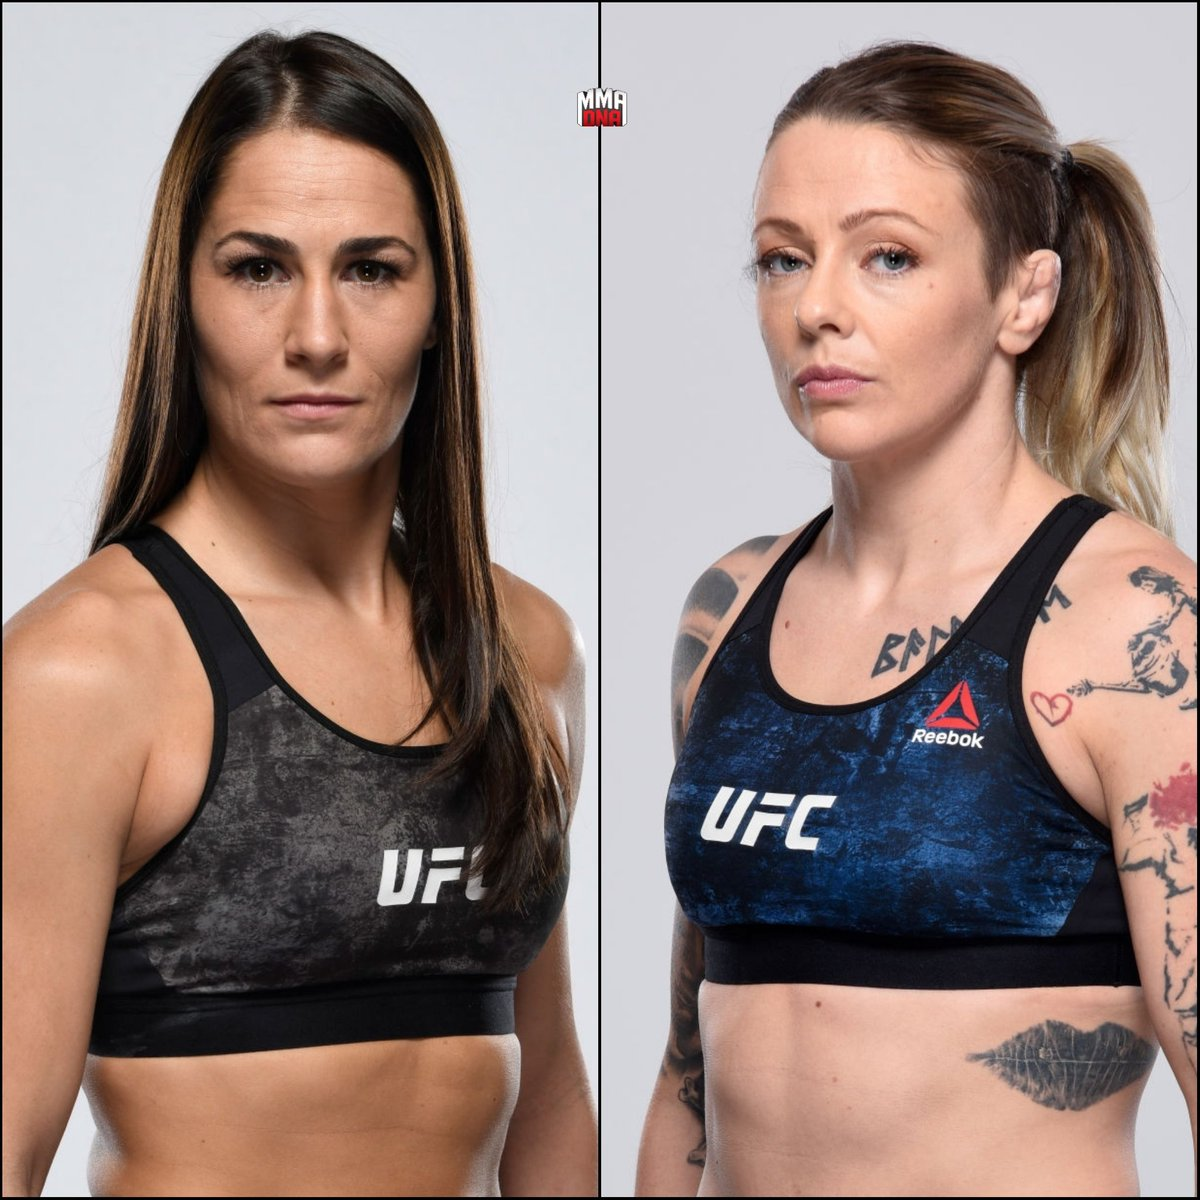 BREAKING  Jessica Eye vs. Joanne Calderwood set for January 23rd. This event will most likely be #UFC257.   https://t.co/AzavdsMQvW https://t.co/hSfPtLwphL